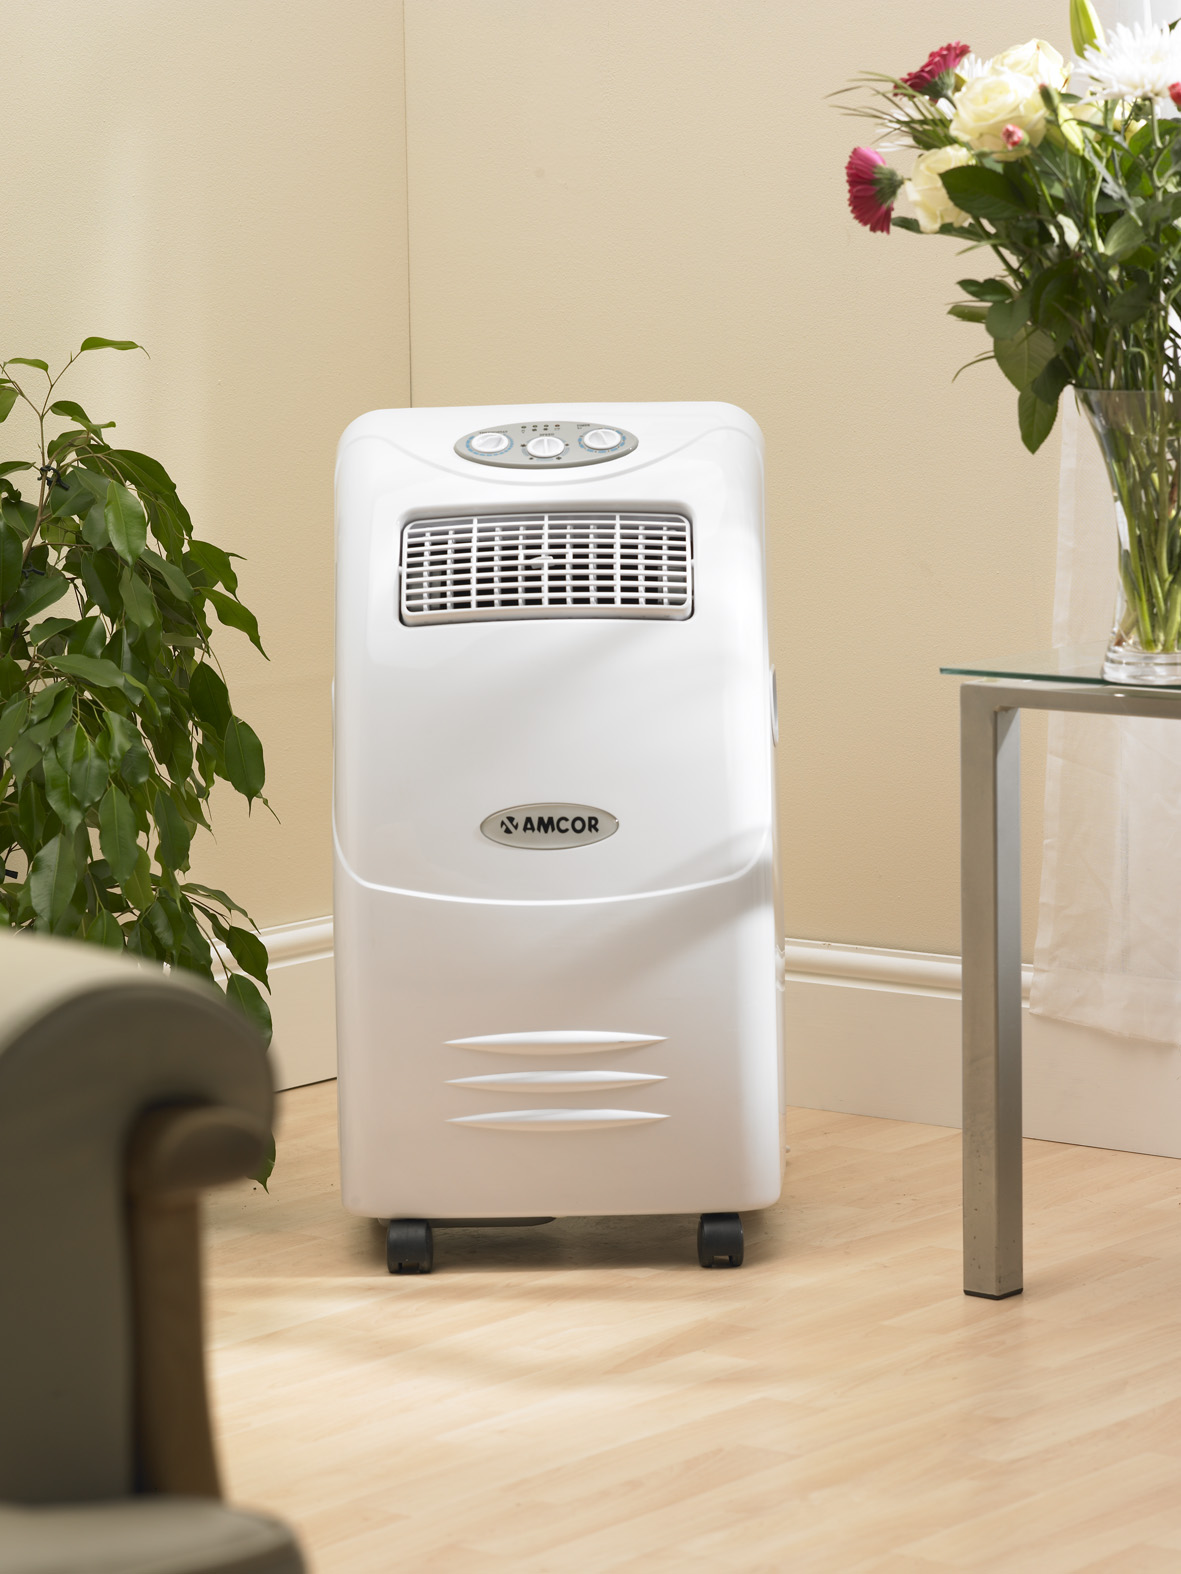 Amcor AMB10KE 2 4Kw 8 000btu quiet portable bedroom air conditioner next  day dellivery. Amcor AMB10KE 2 4Kw 8 000btu quiet portable bedroom air